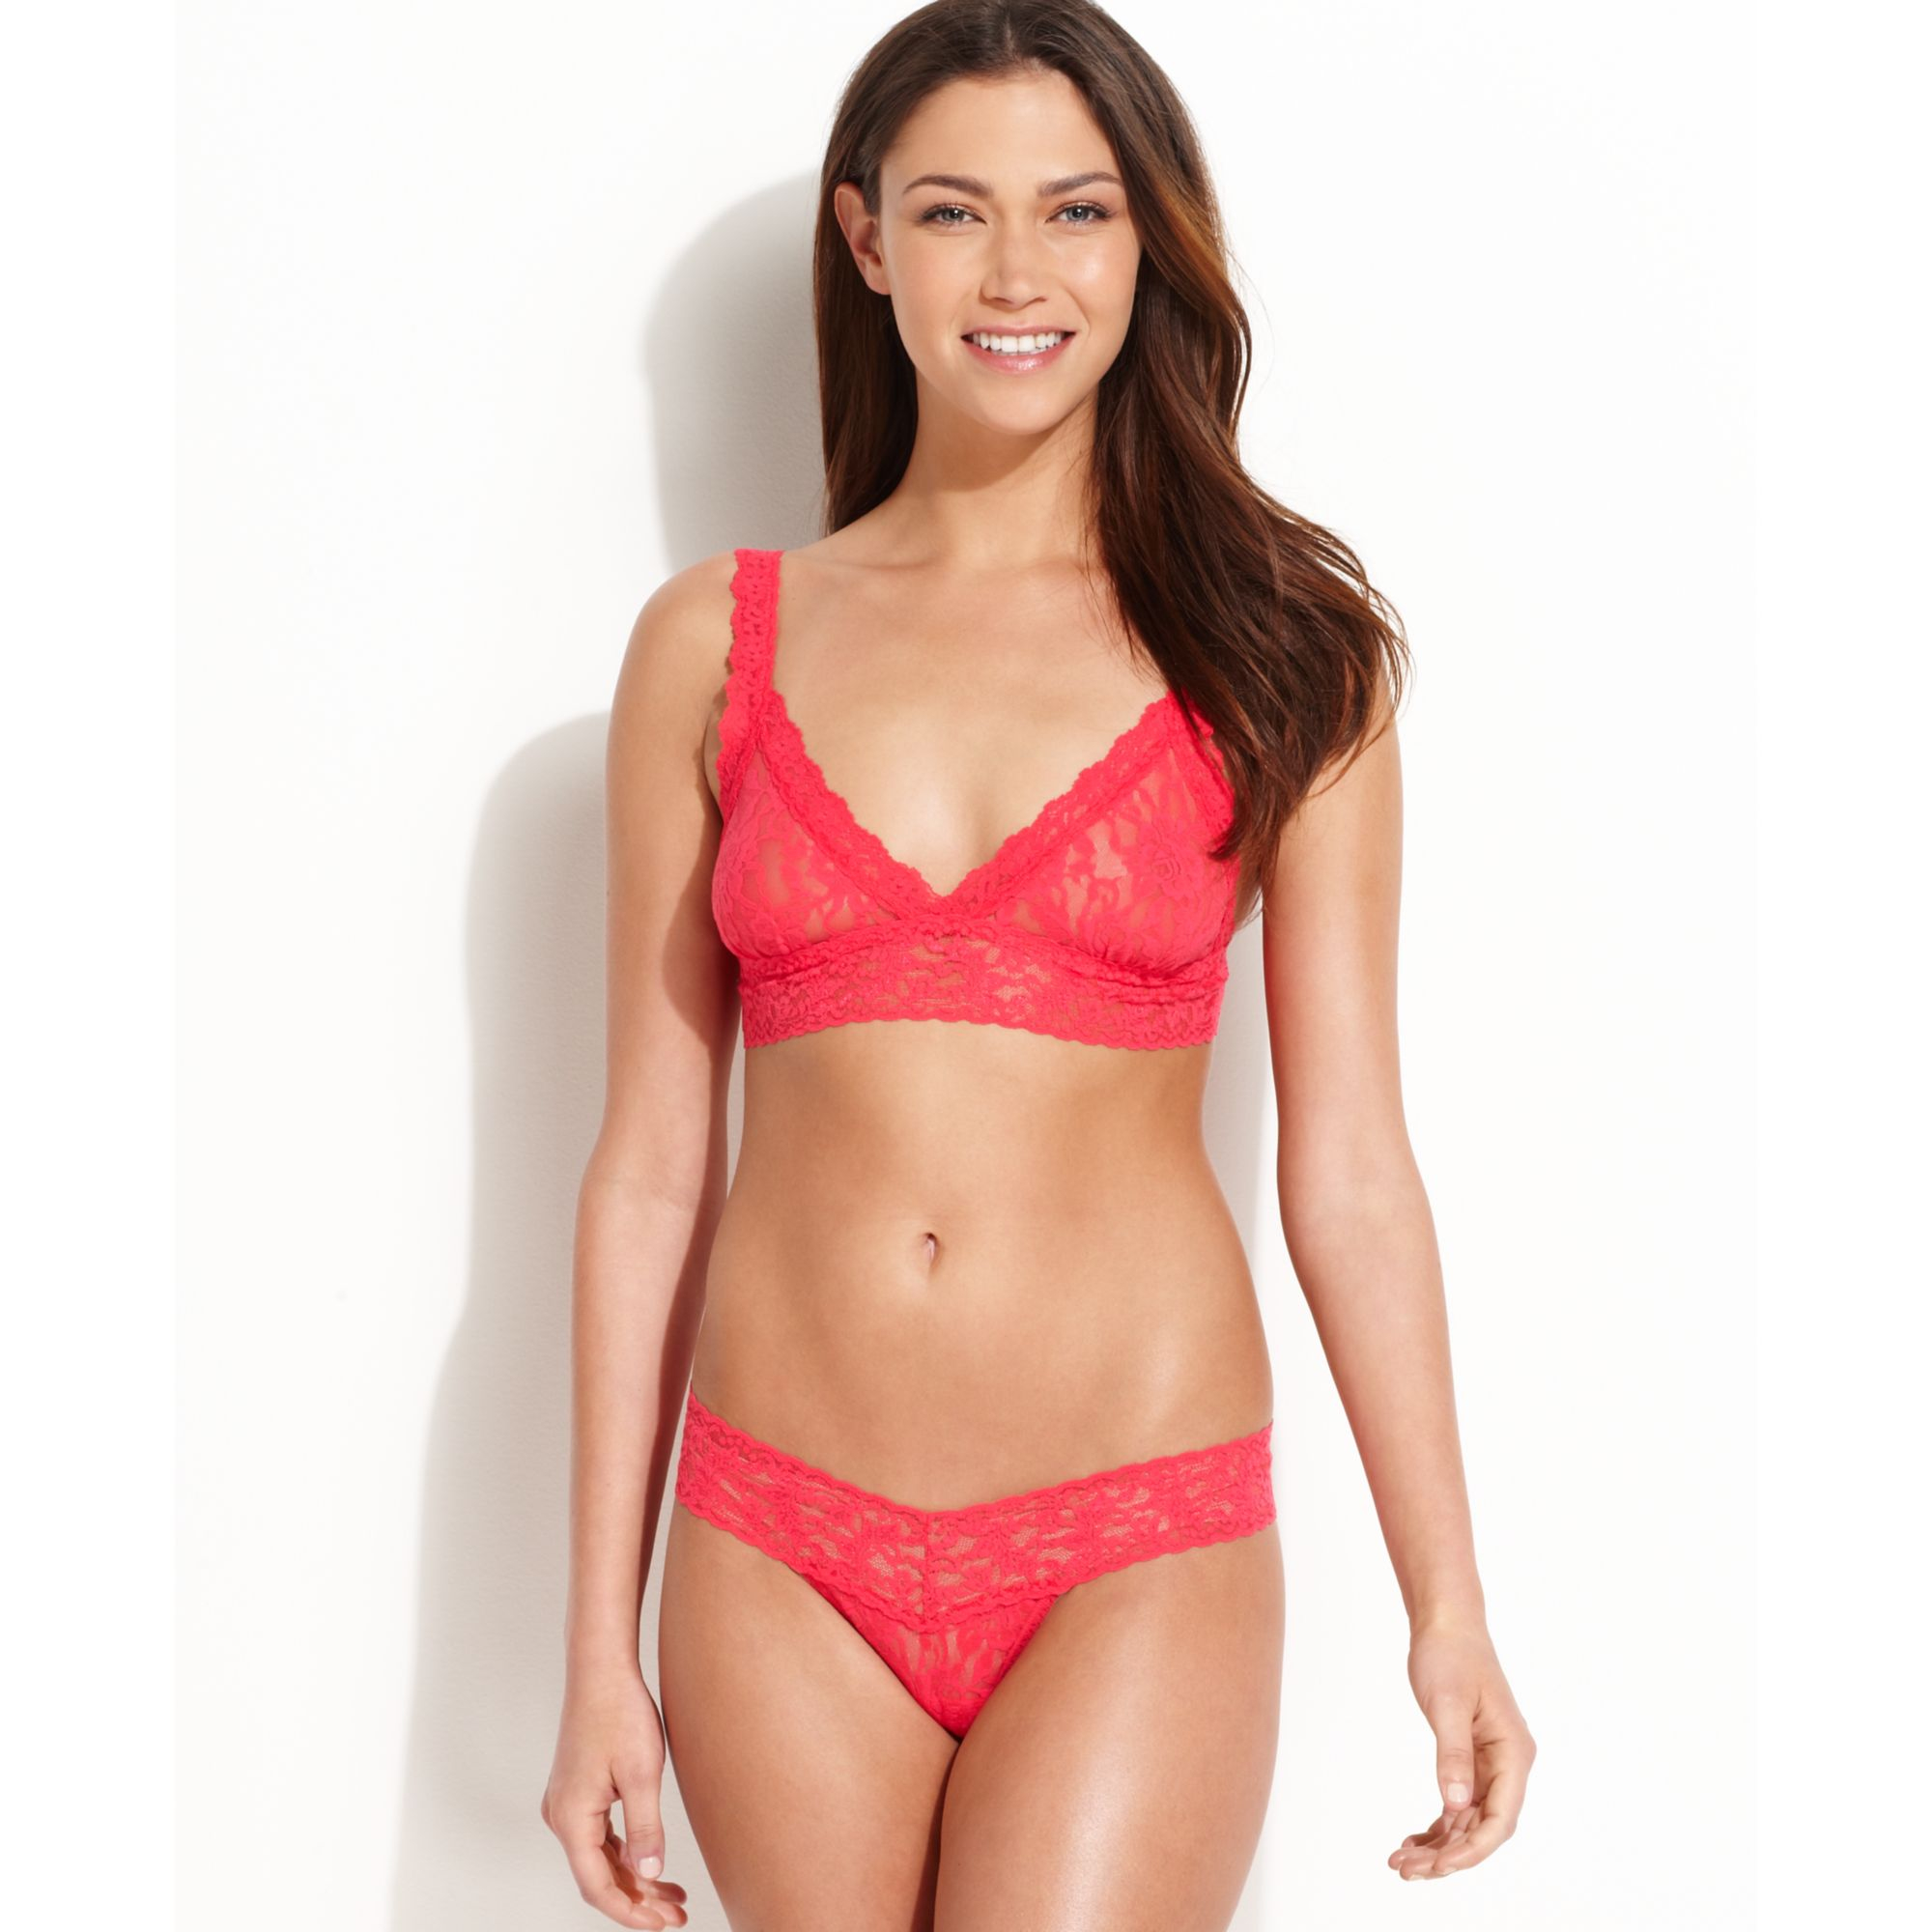 8911c1b72453c Lyst - Hanky Panky Signature Lace Bralette 113 in Red